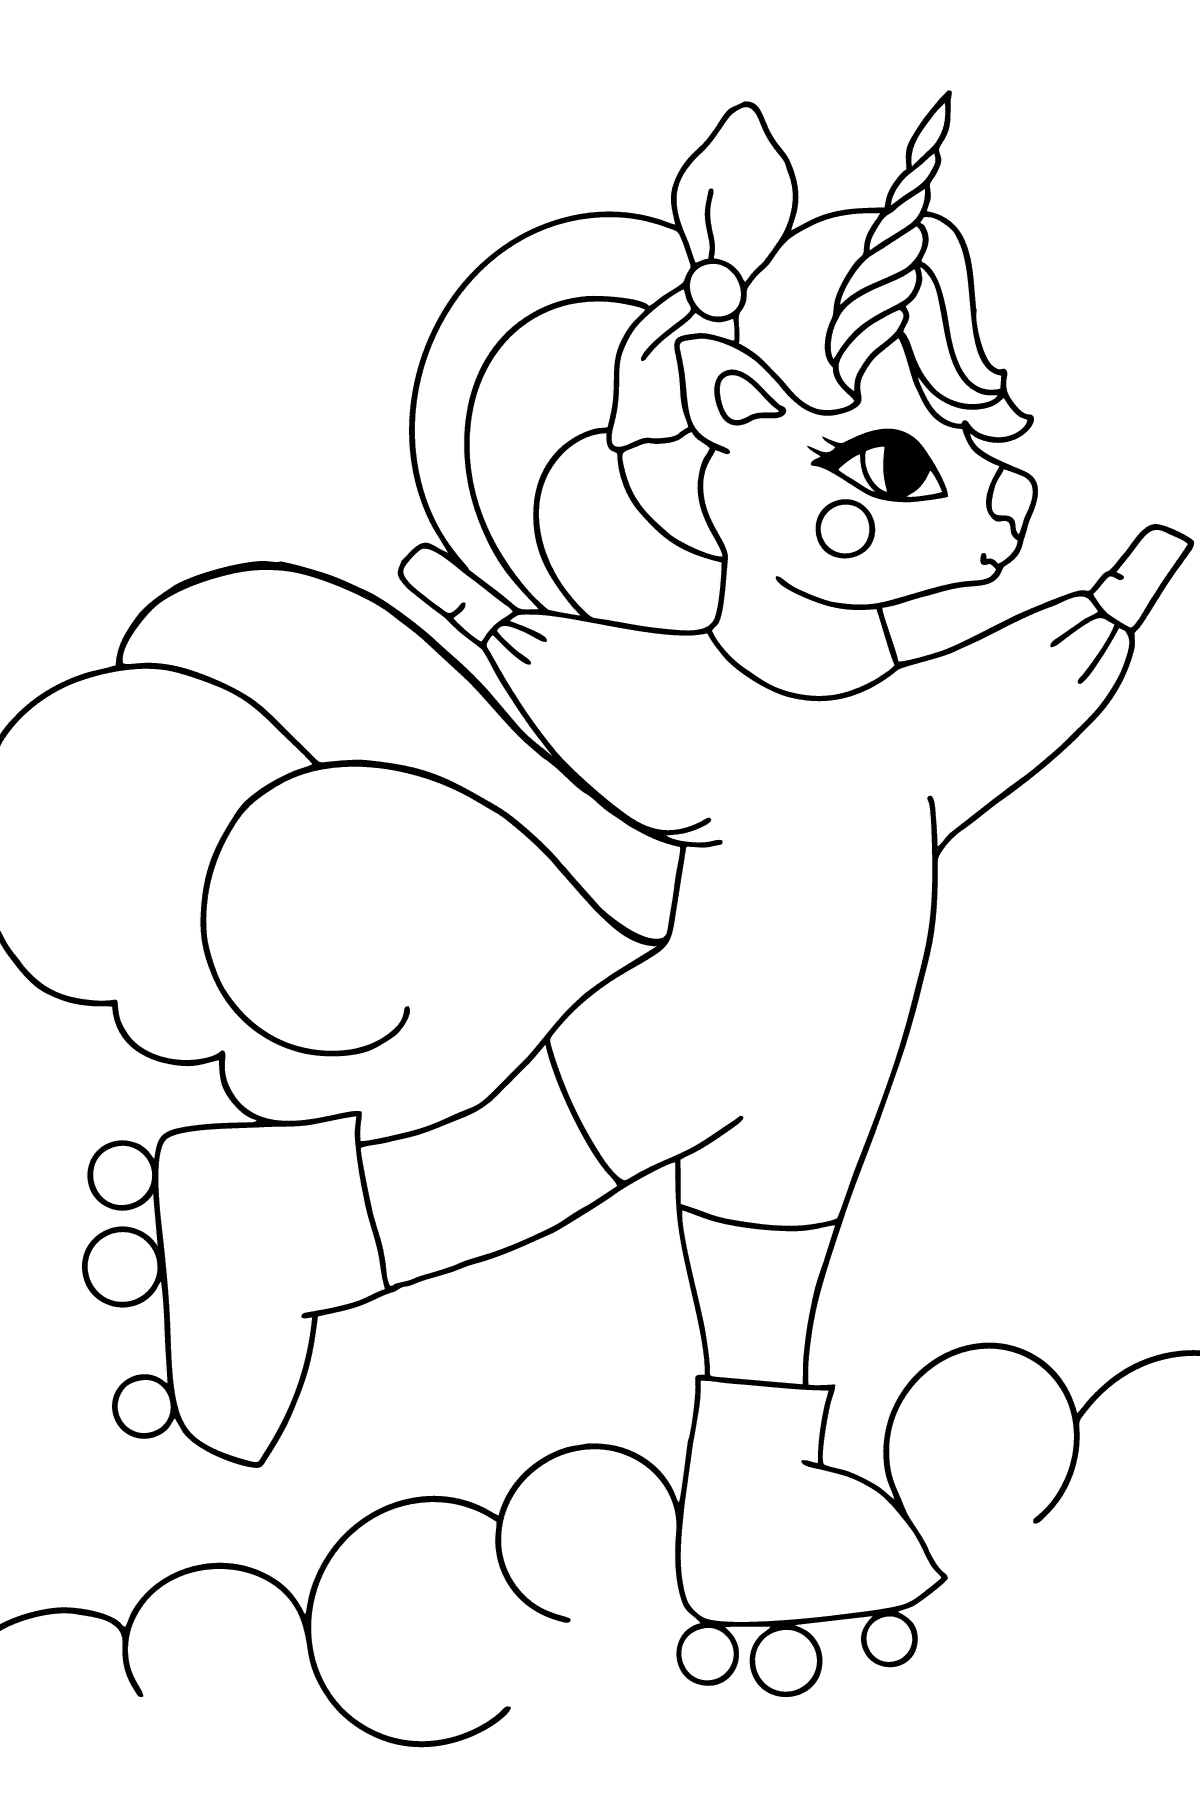 Coloring Page - A Unicorn on Skates for Children